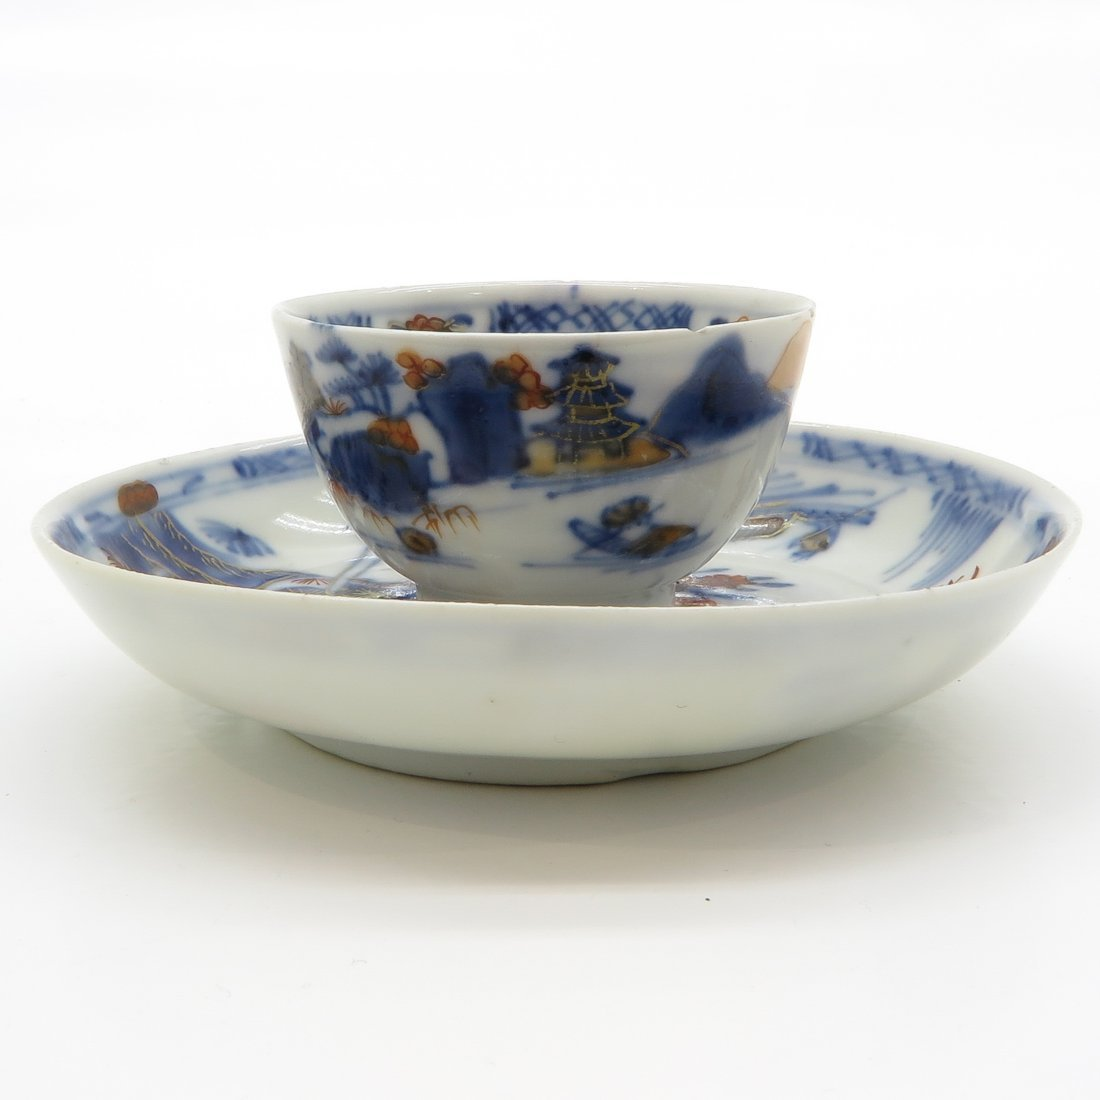 18th Century China Porcelain Cup and Saucer - 3